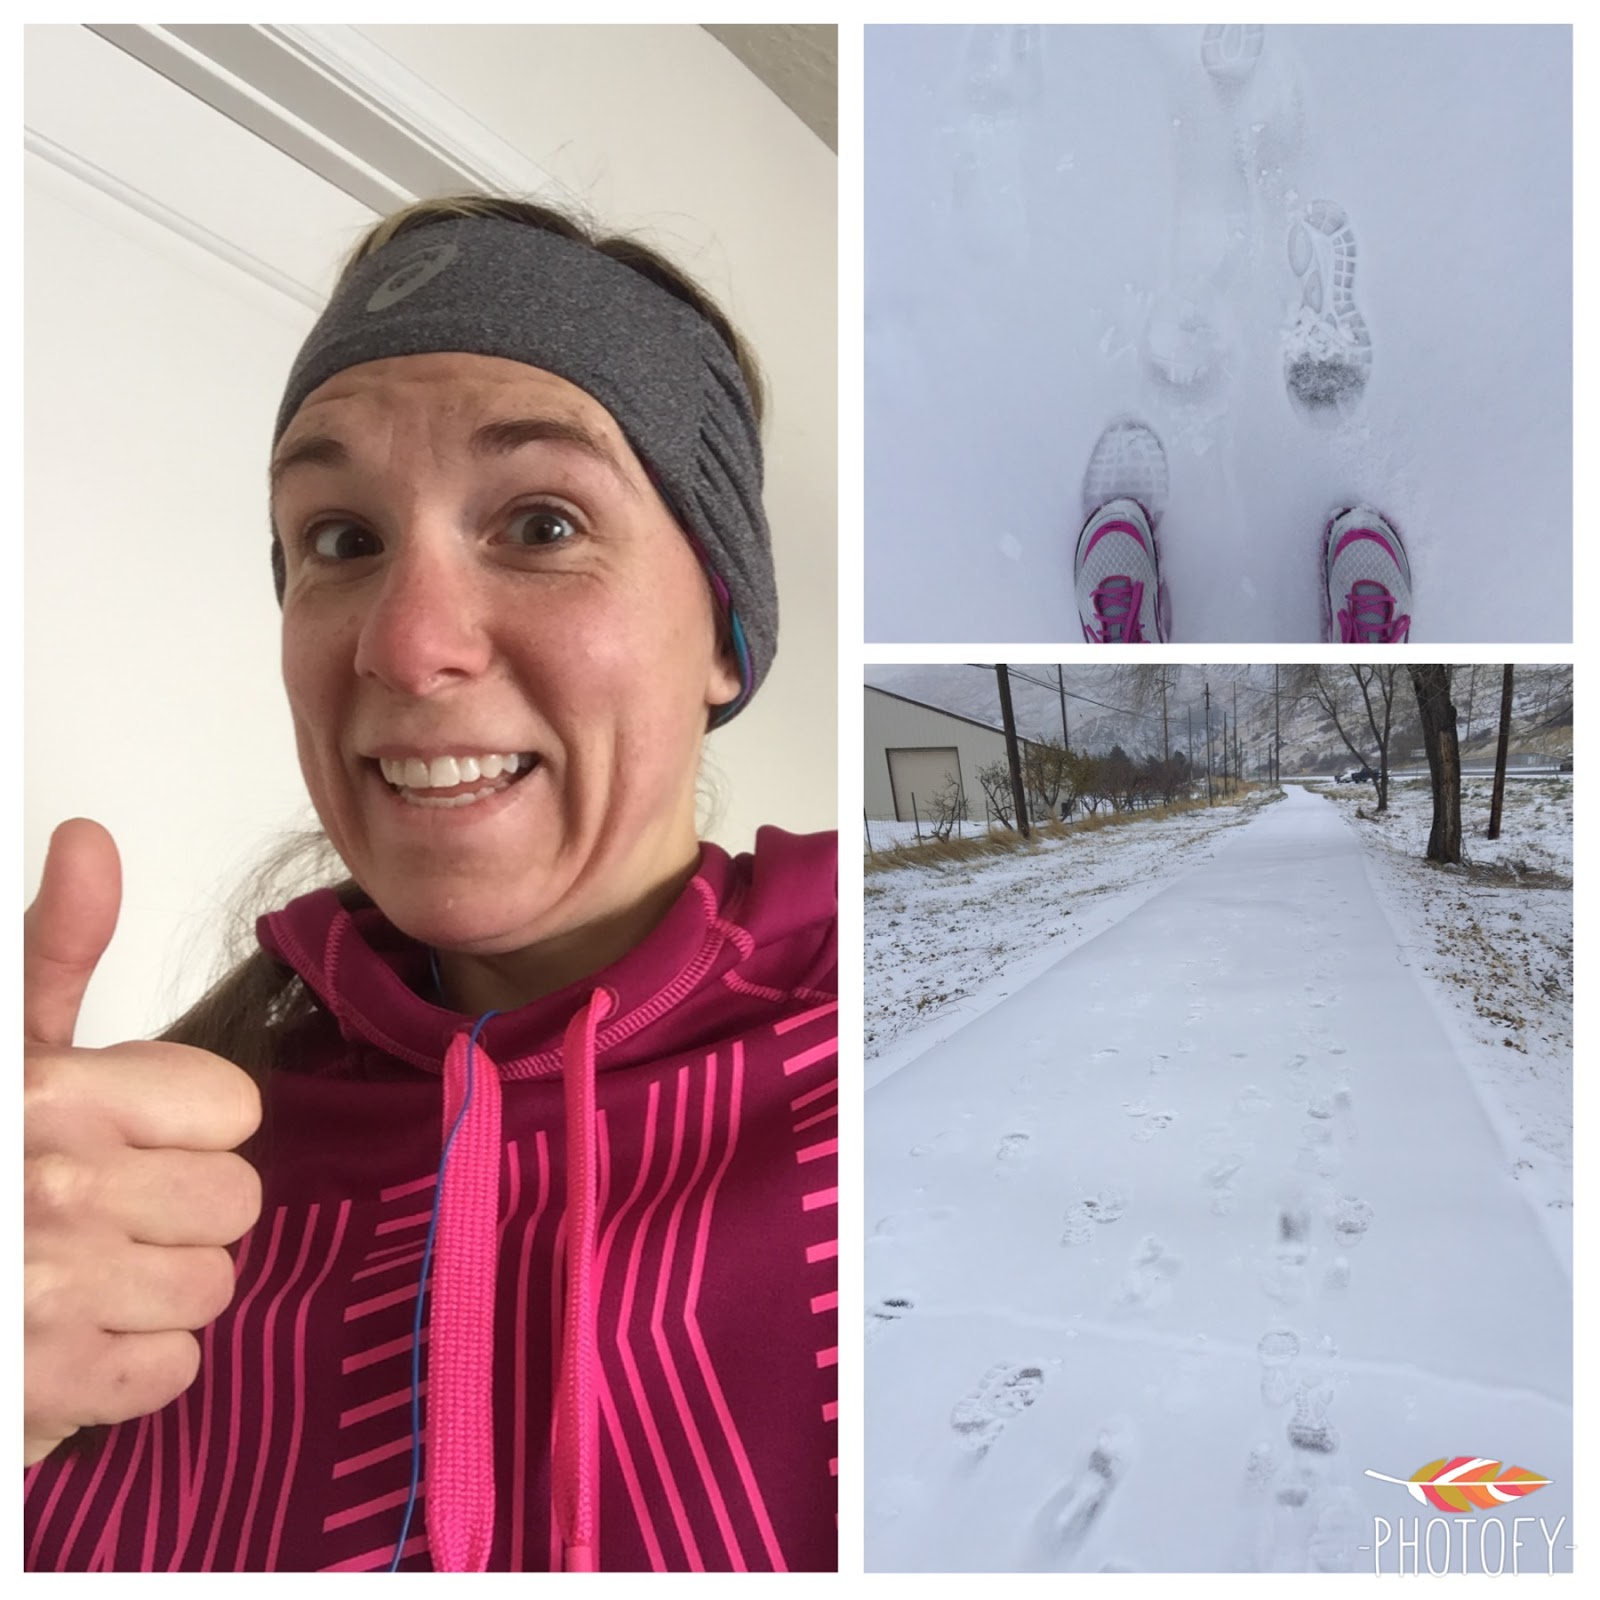 running 12 miles on the snow in utah training for the dopey challenge